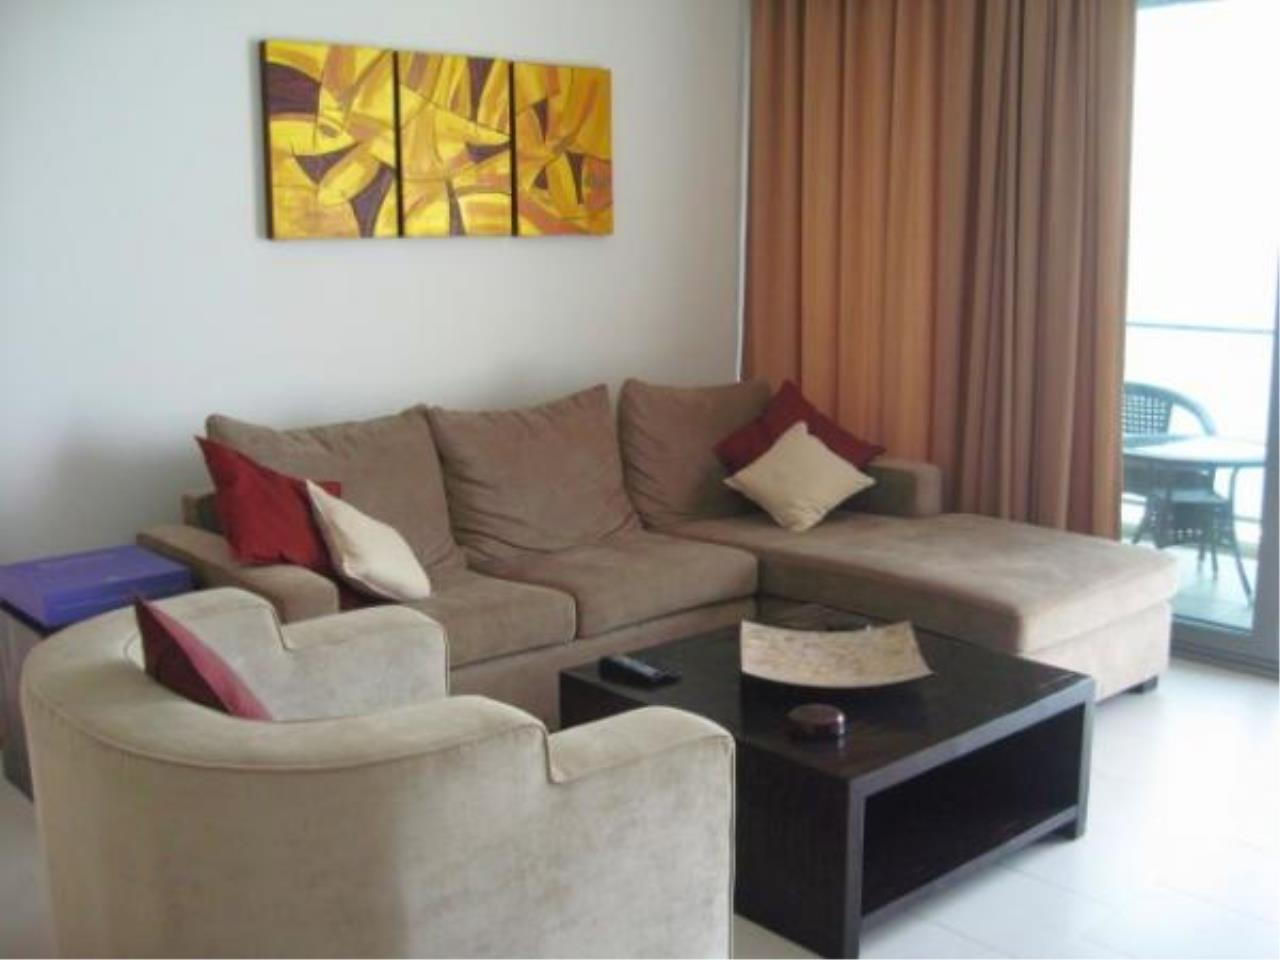 RE/MAX Town & Country Property Agency's Beach front condo for rent in Wong Amat! 2